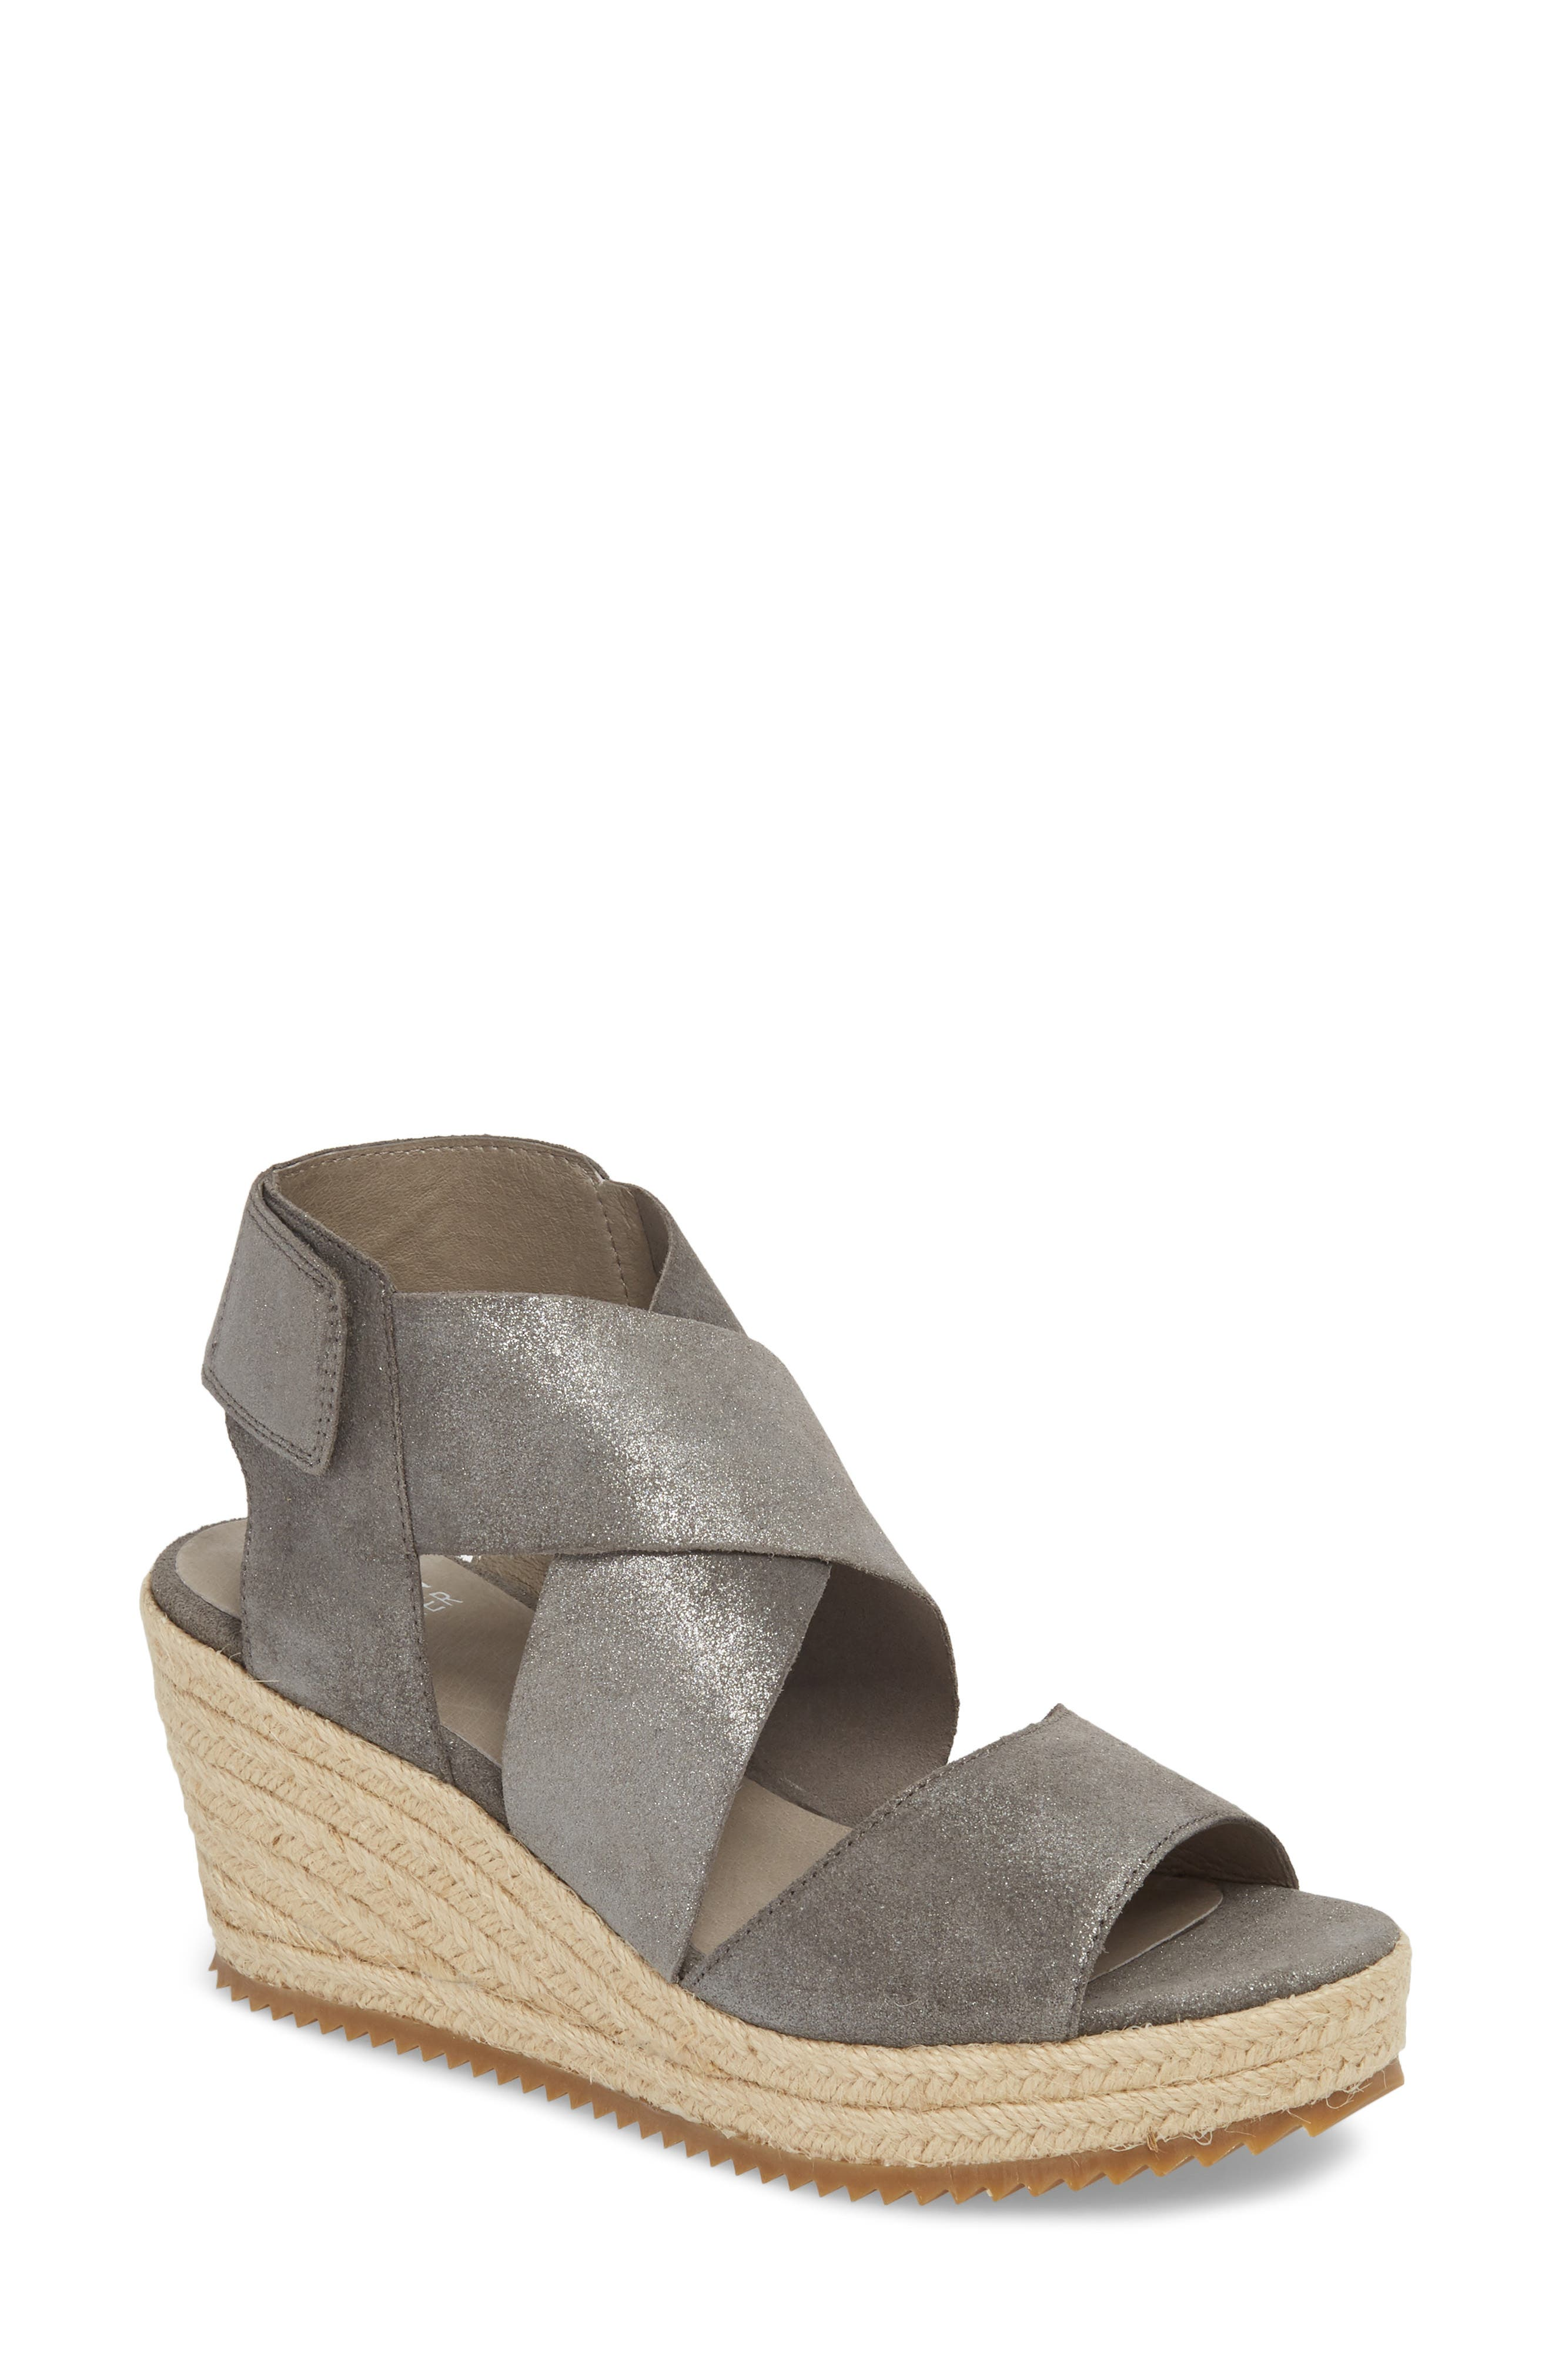 'Willow' Espadrille Wedge Sandal,                             Main thumbnail 1, color,                             Pewter Metallic Suede